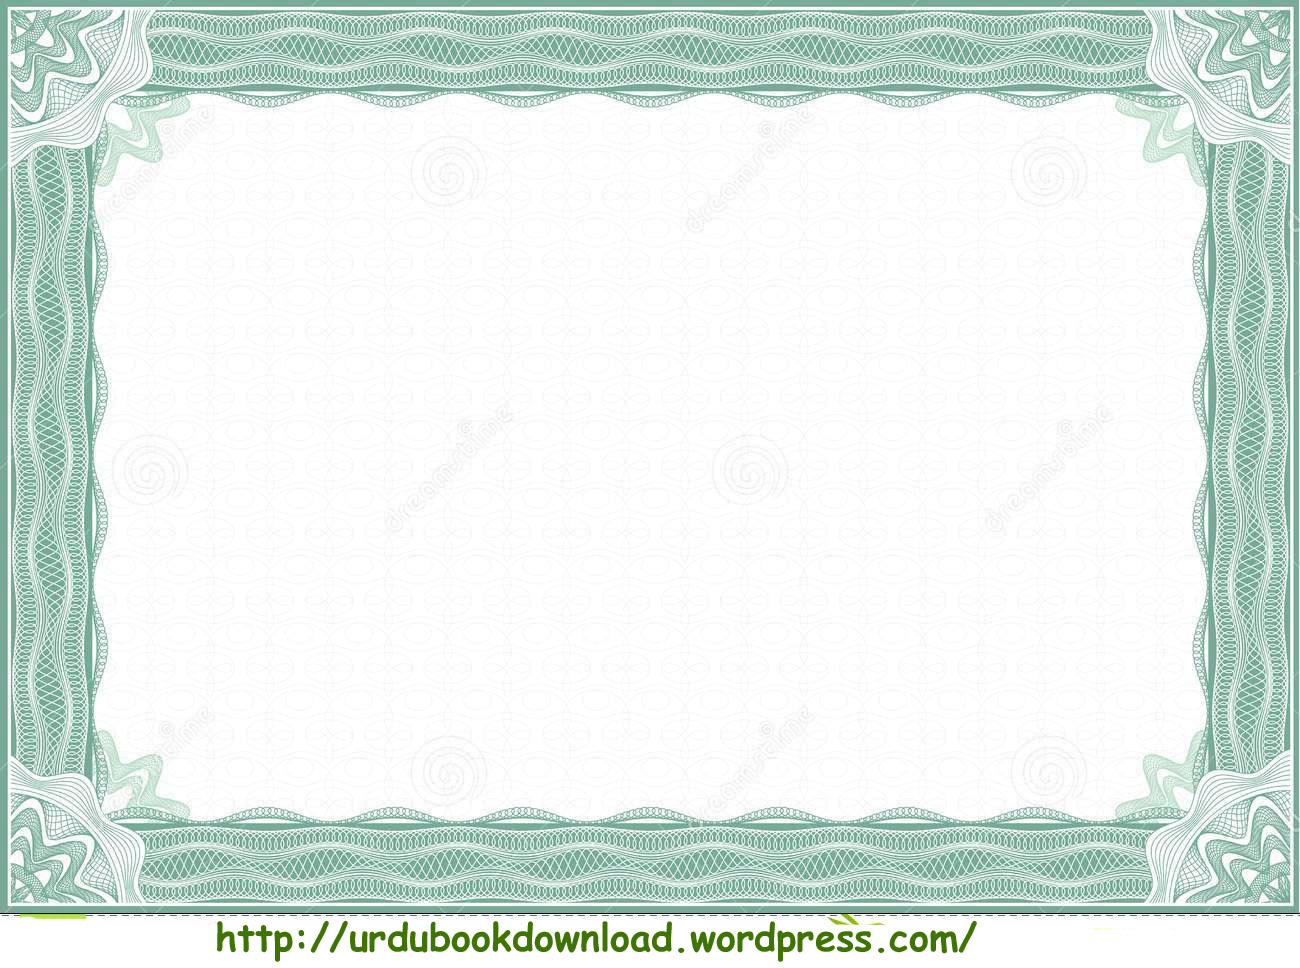 12 certificate frame vector images free vector certificate frame certificate borders and for Certificate border vector